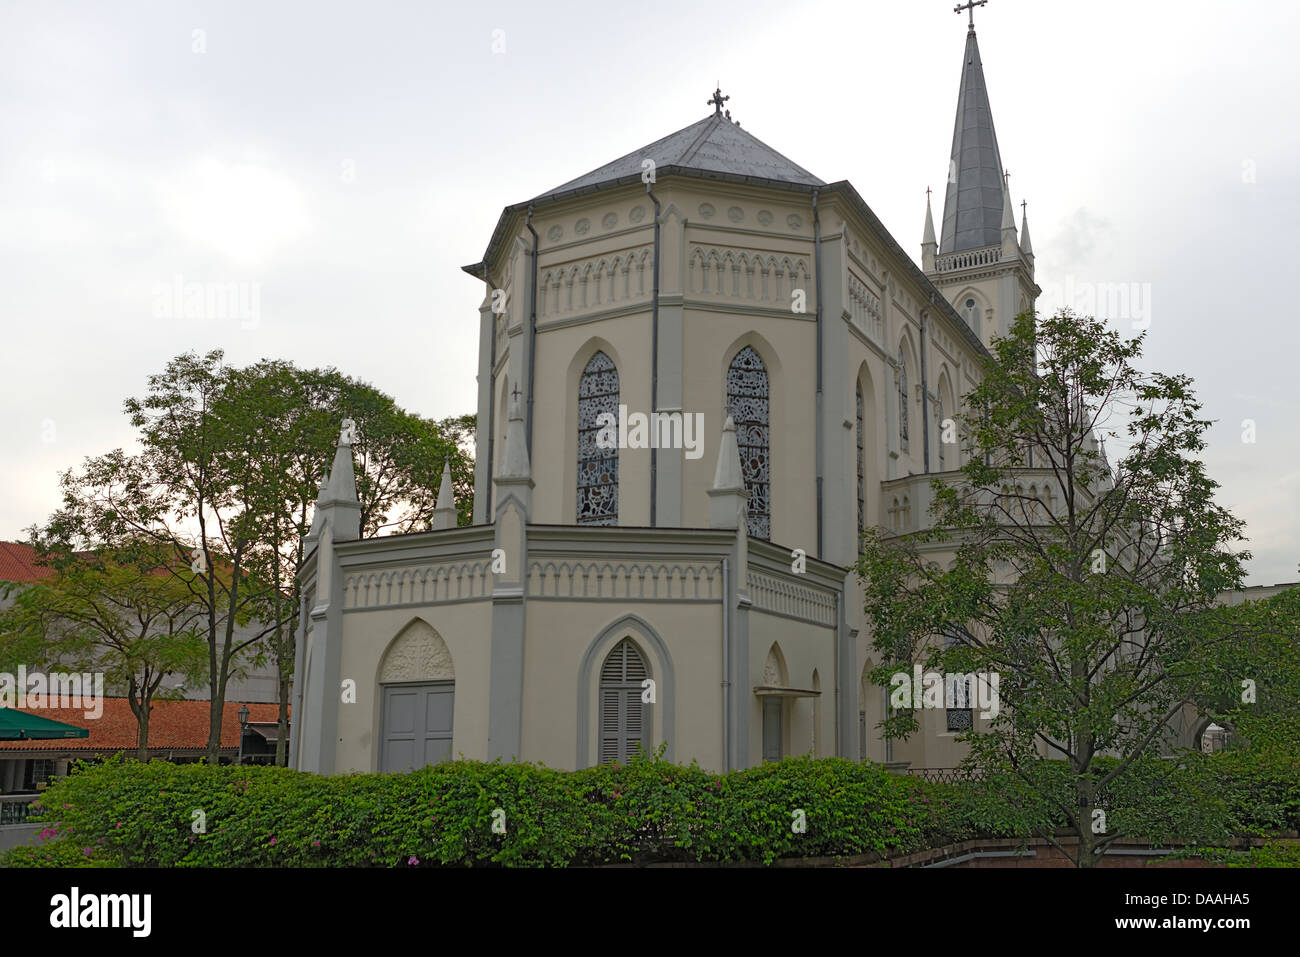 Chijmes Church, Chij Chapel is desecrated,Singapore - Stock Image